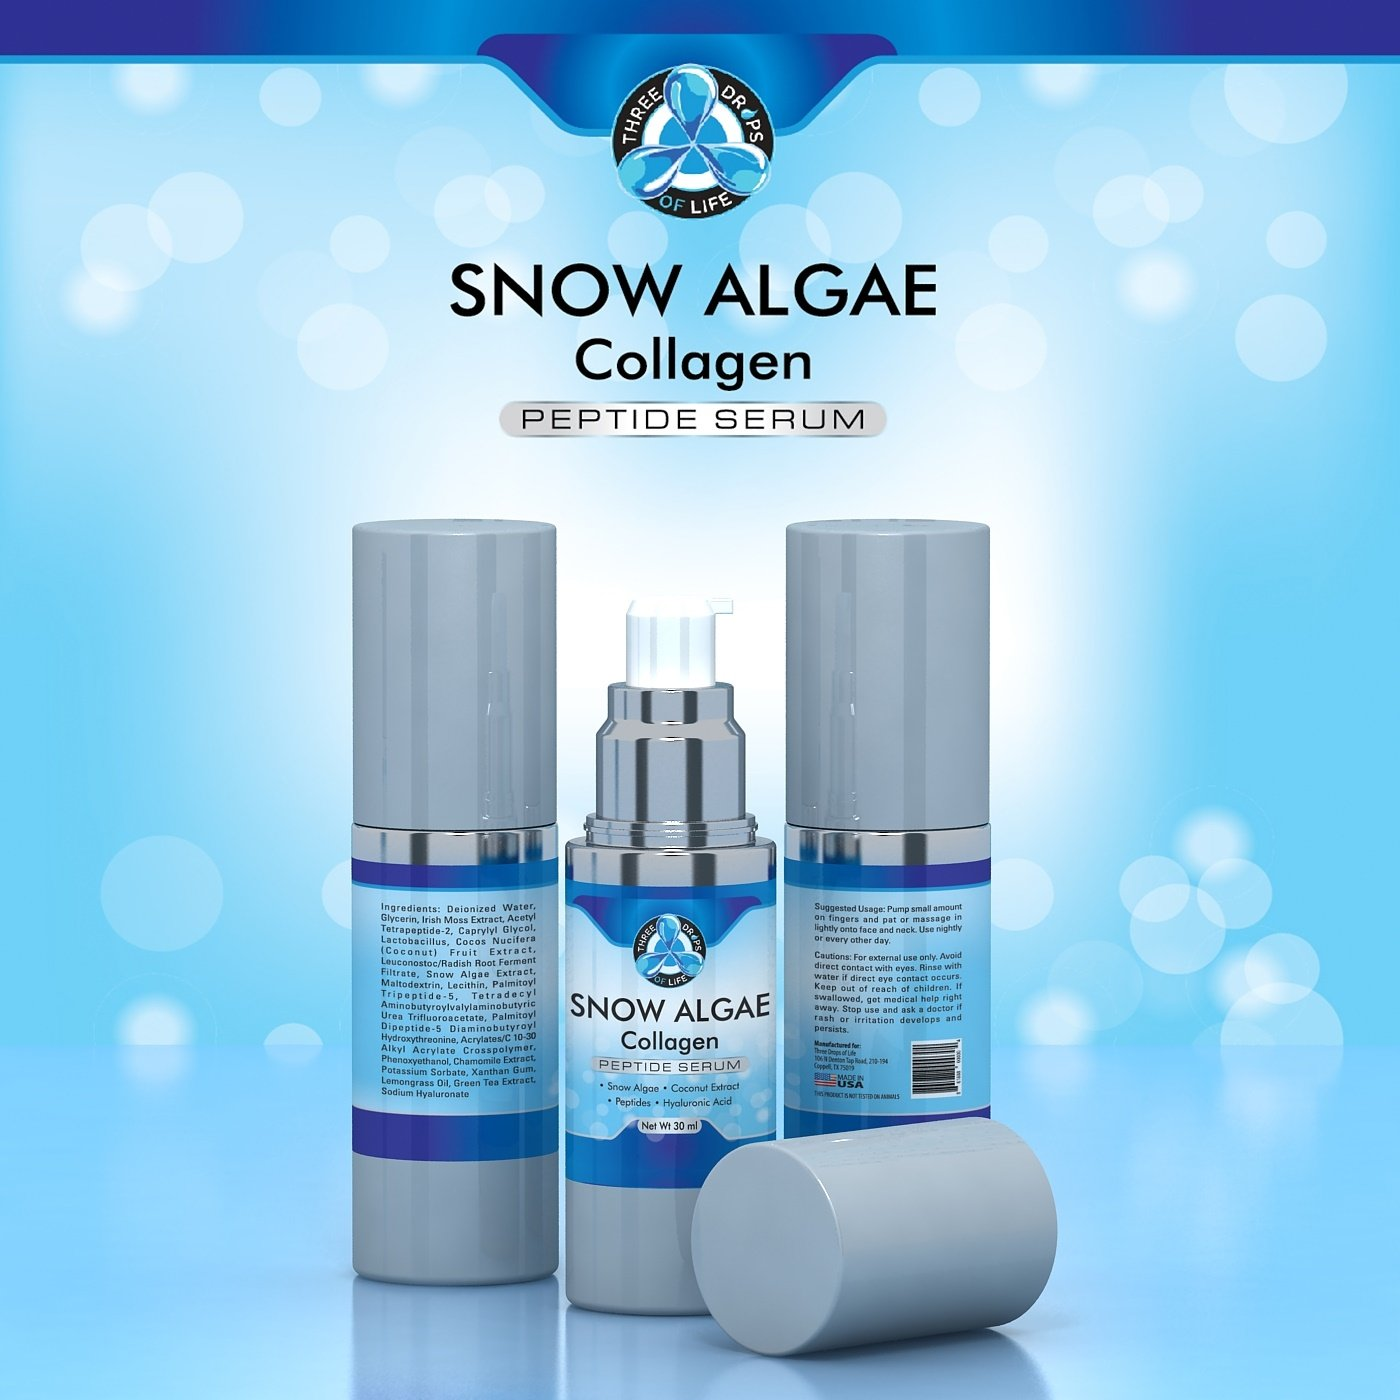 Amazon.com: Hydrating Snow Algae Collagen Peptide Serum, Best Cosmetic Face  Moisturizer for Anti-Aging | Support Wrinkle Treatment, Clinical Strength  Facial ...